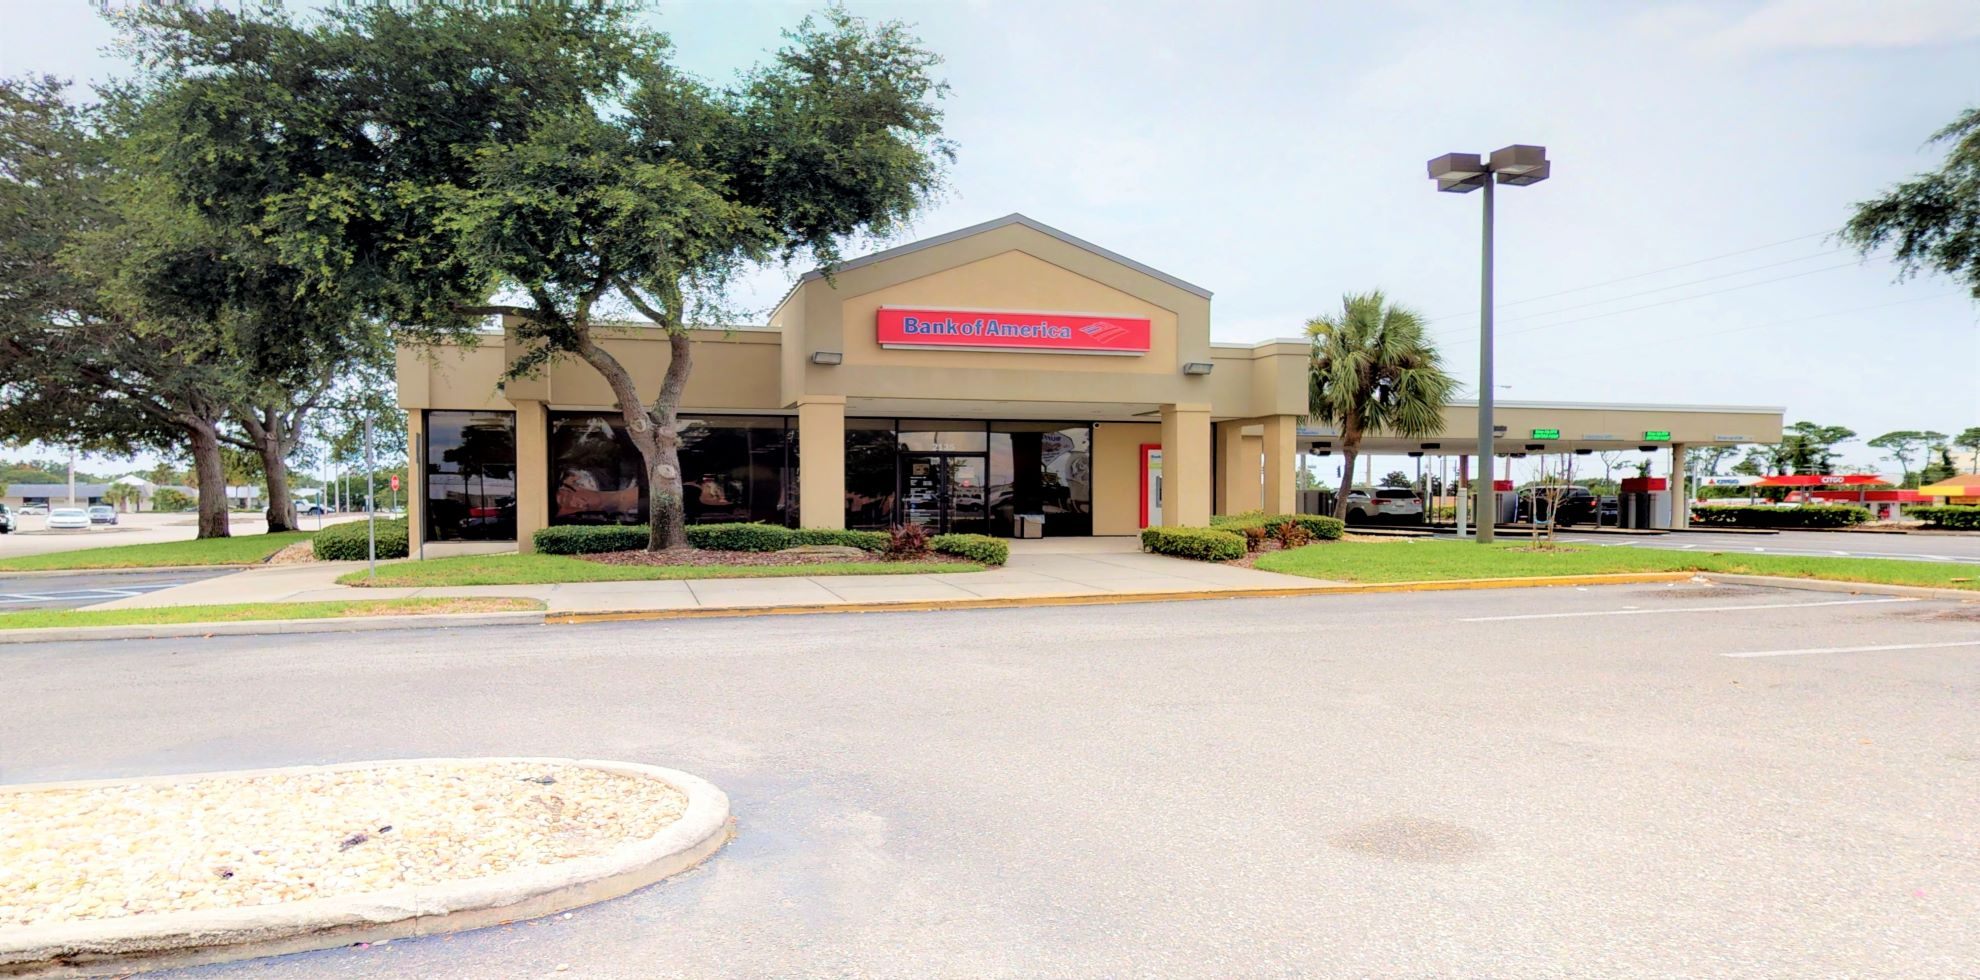 Bank of America financial center with drive-thru ATM and teller | 2135 US Highway 1 S, Saint Augustine, FL 32086